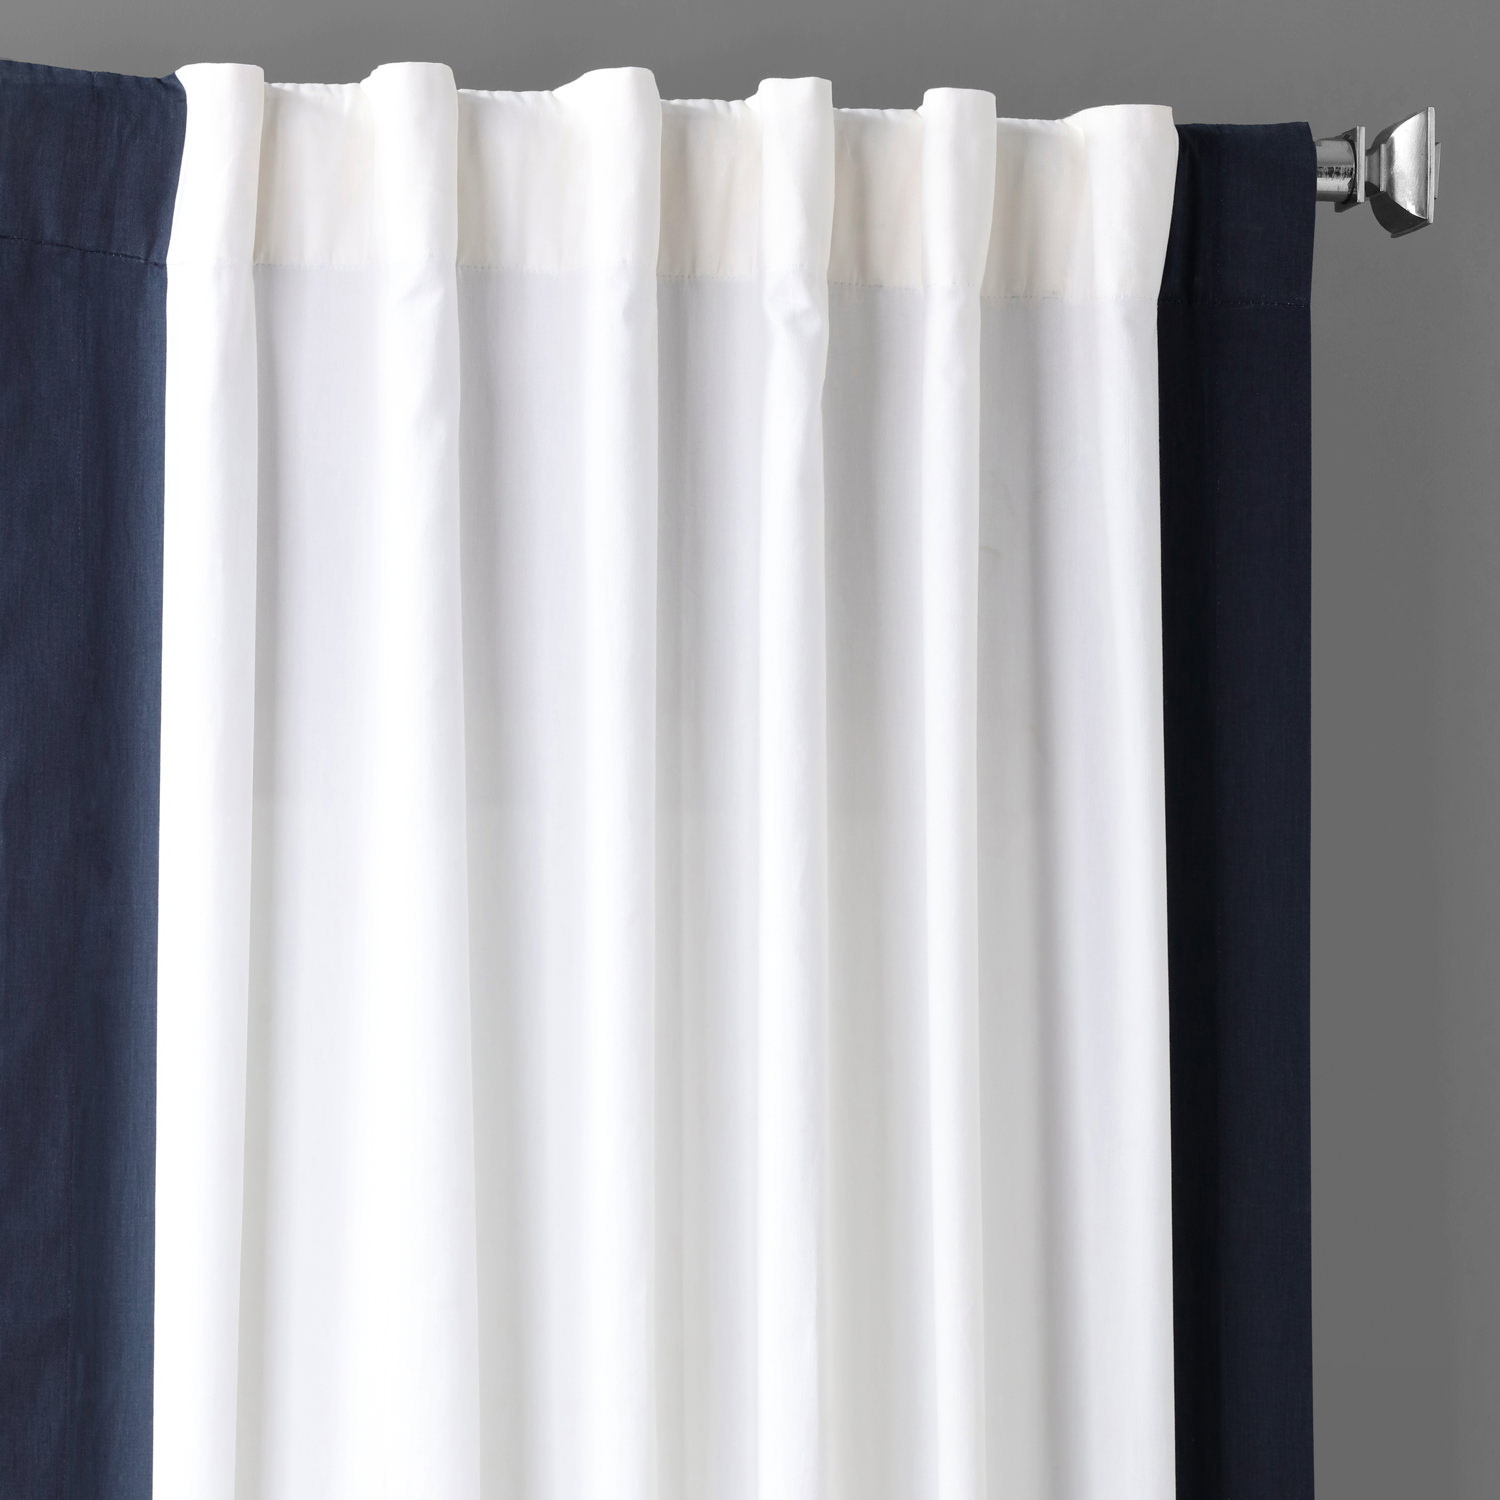 Fresh Popcorn and Polo Navy Vertical Colorblock Panama Curtain